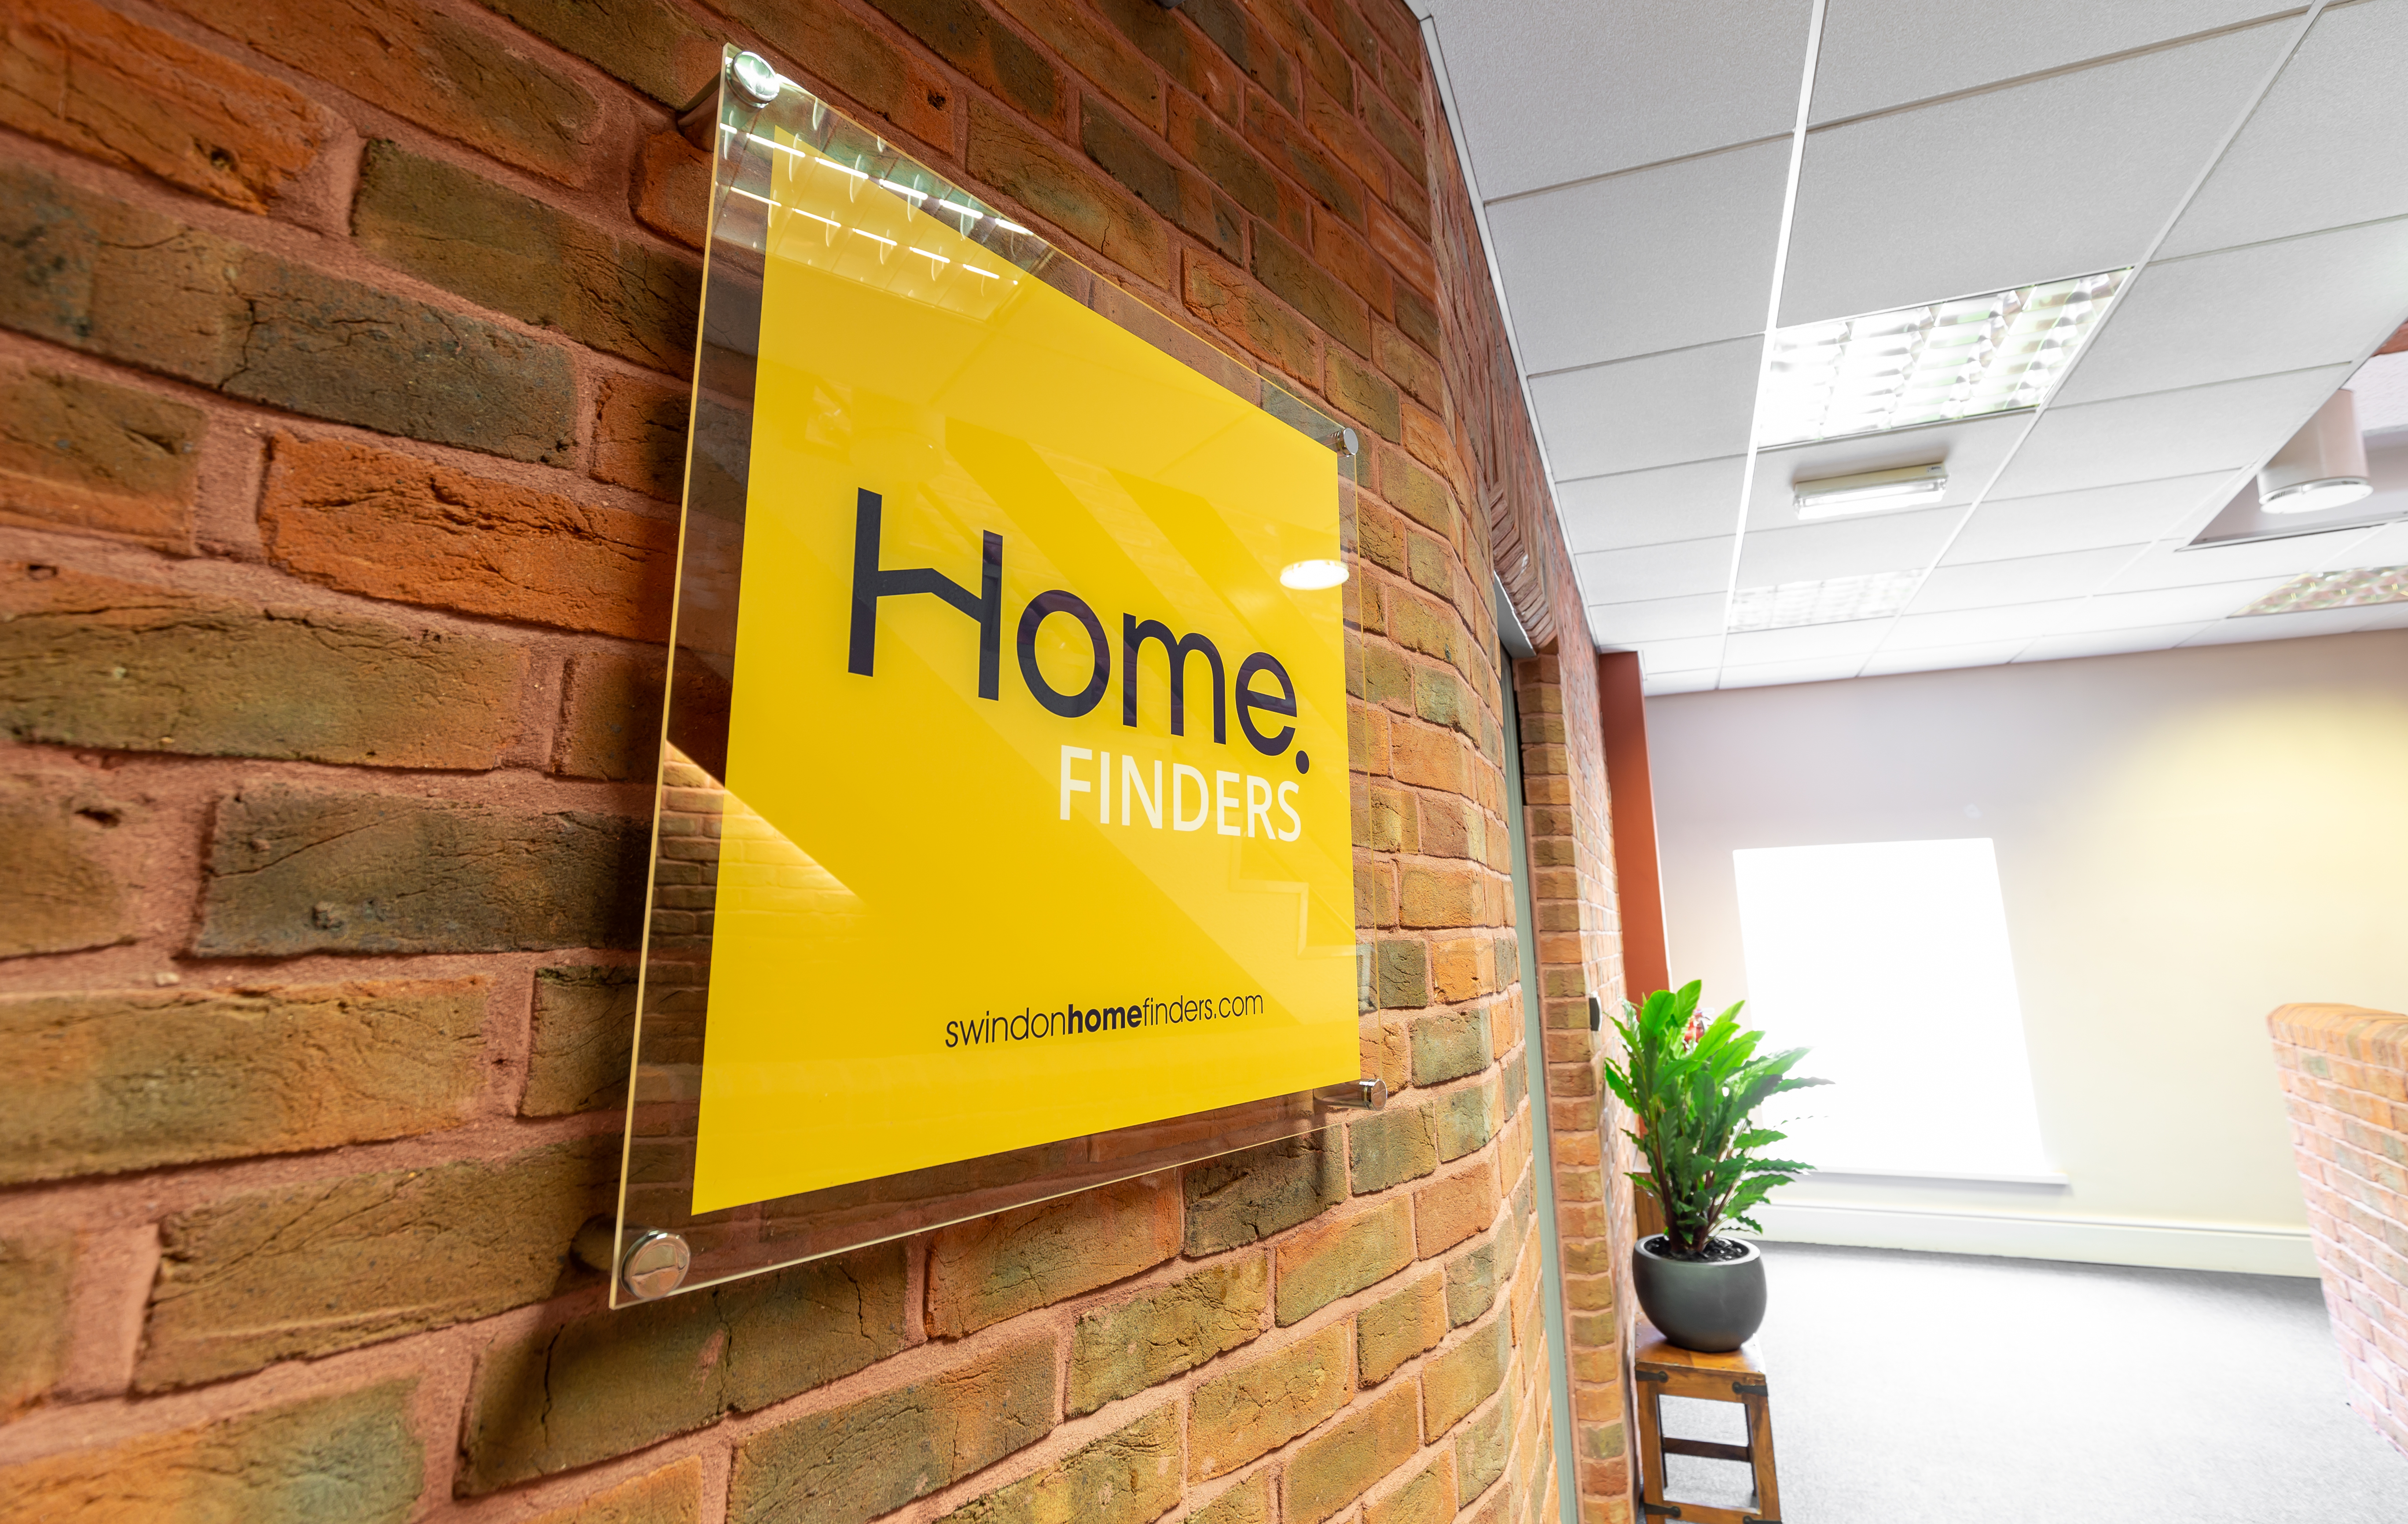 home finders sign